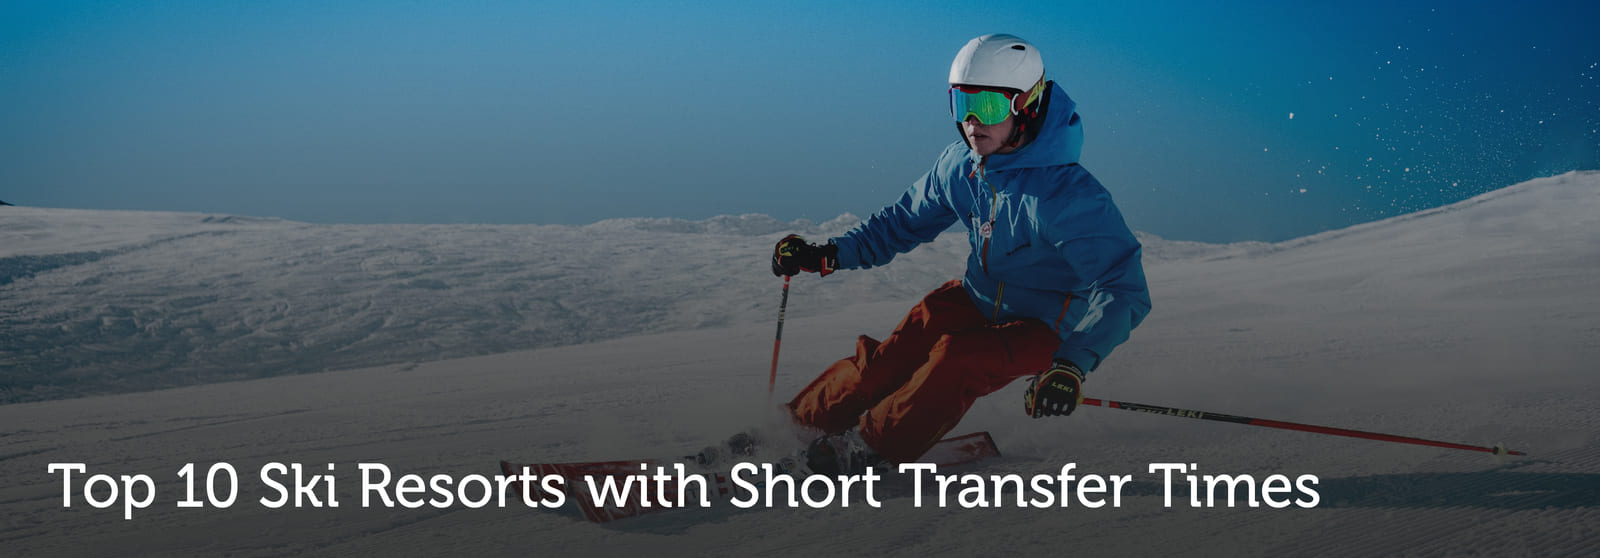 Ski resorts with short transfer times